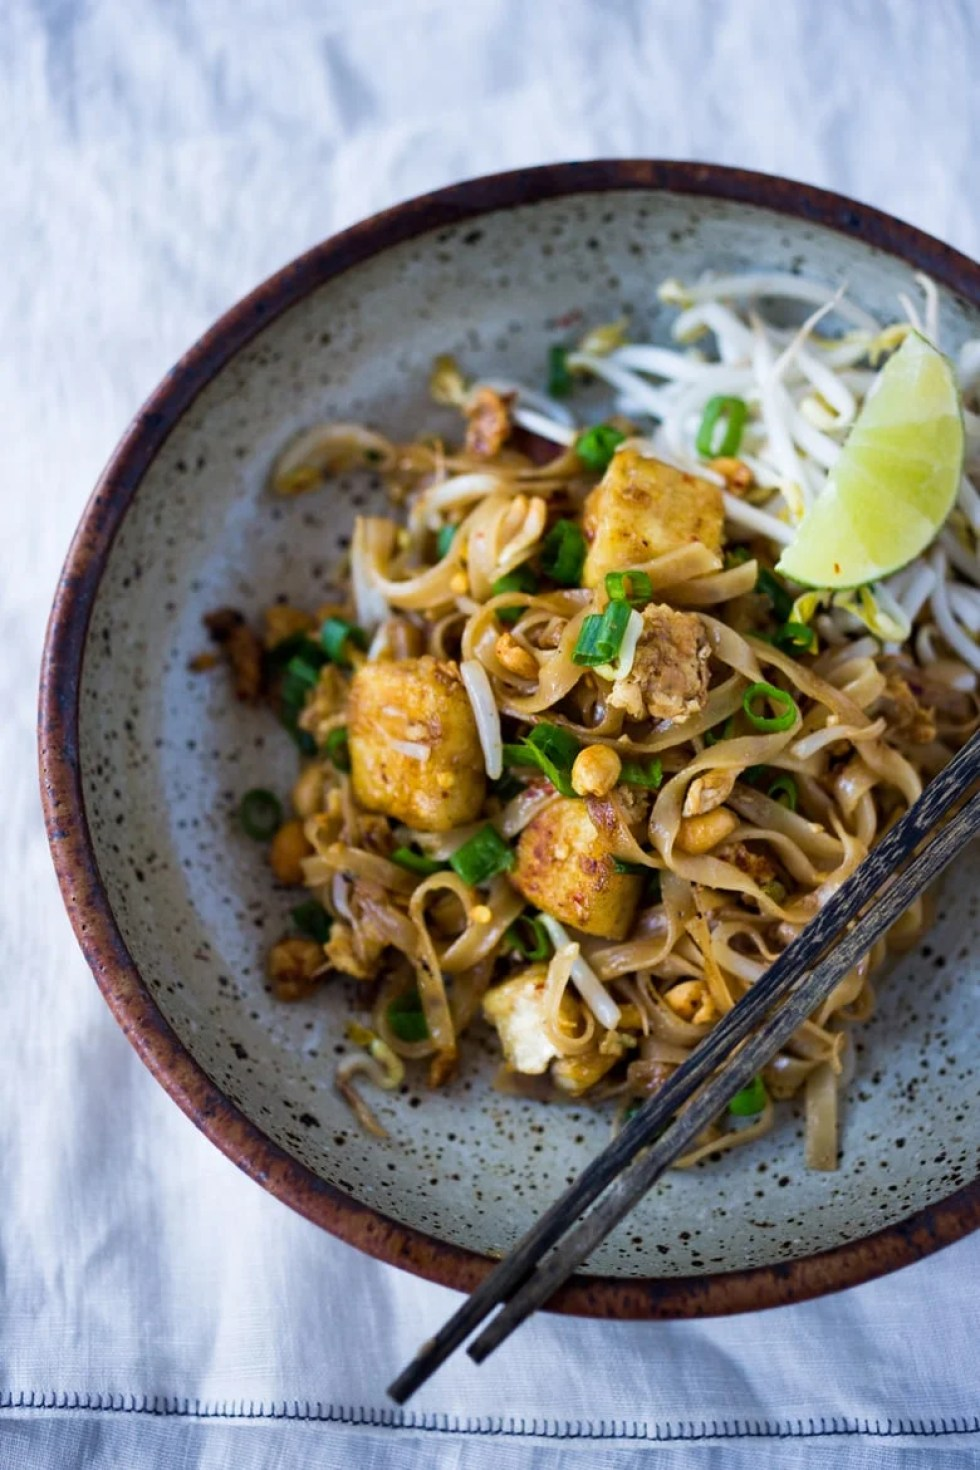 An EASY delicious recipe for 15 MINUTE PAD THAI- simple ingredients with amazing flavor! | www.feastingathome.com